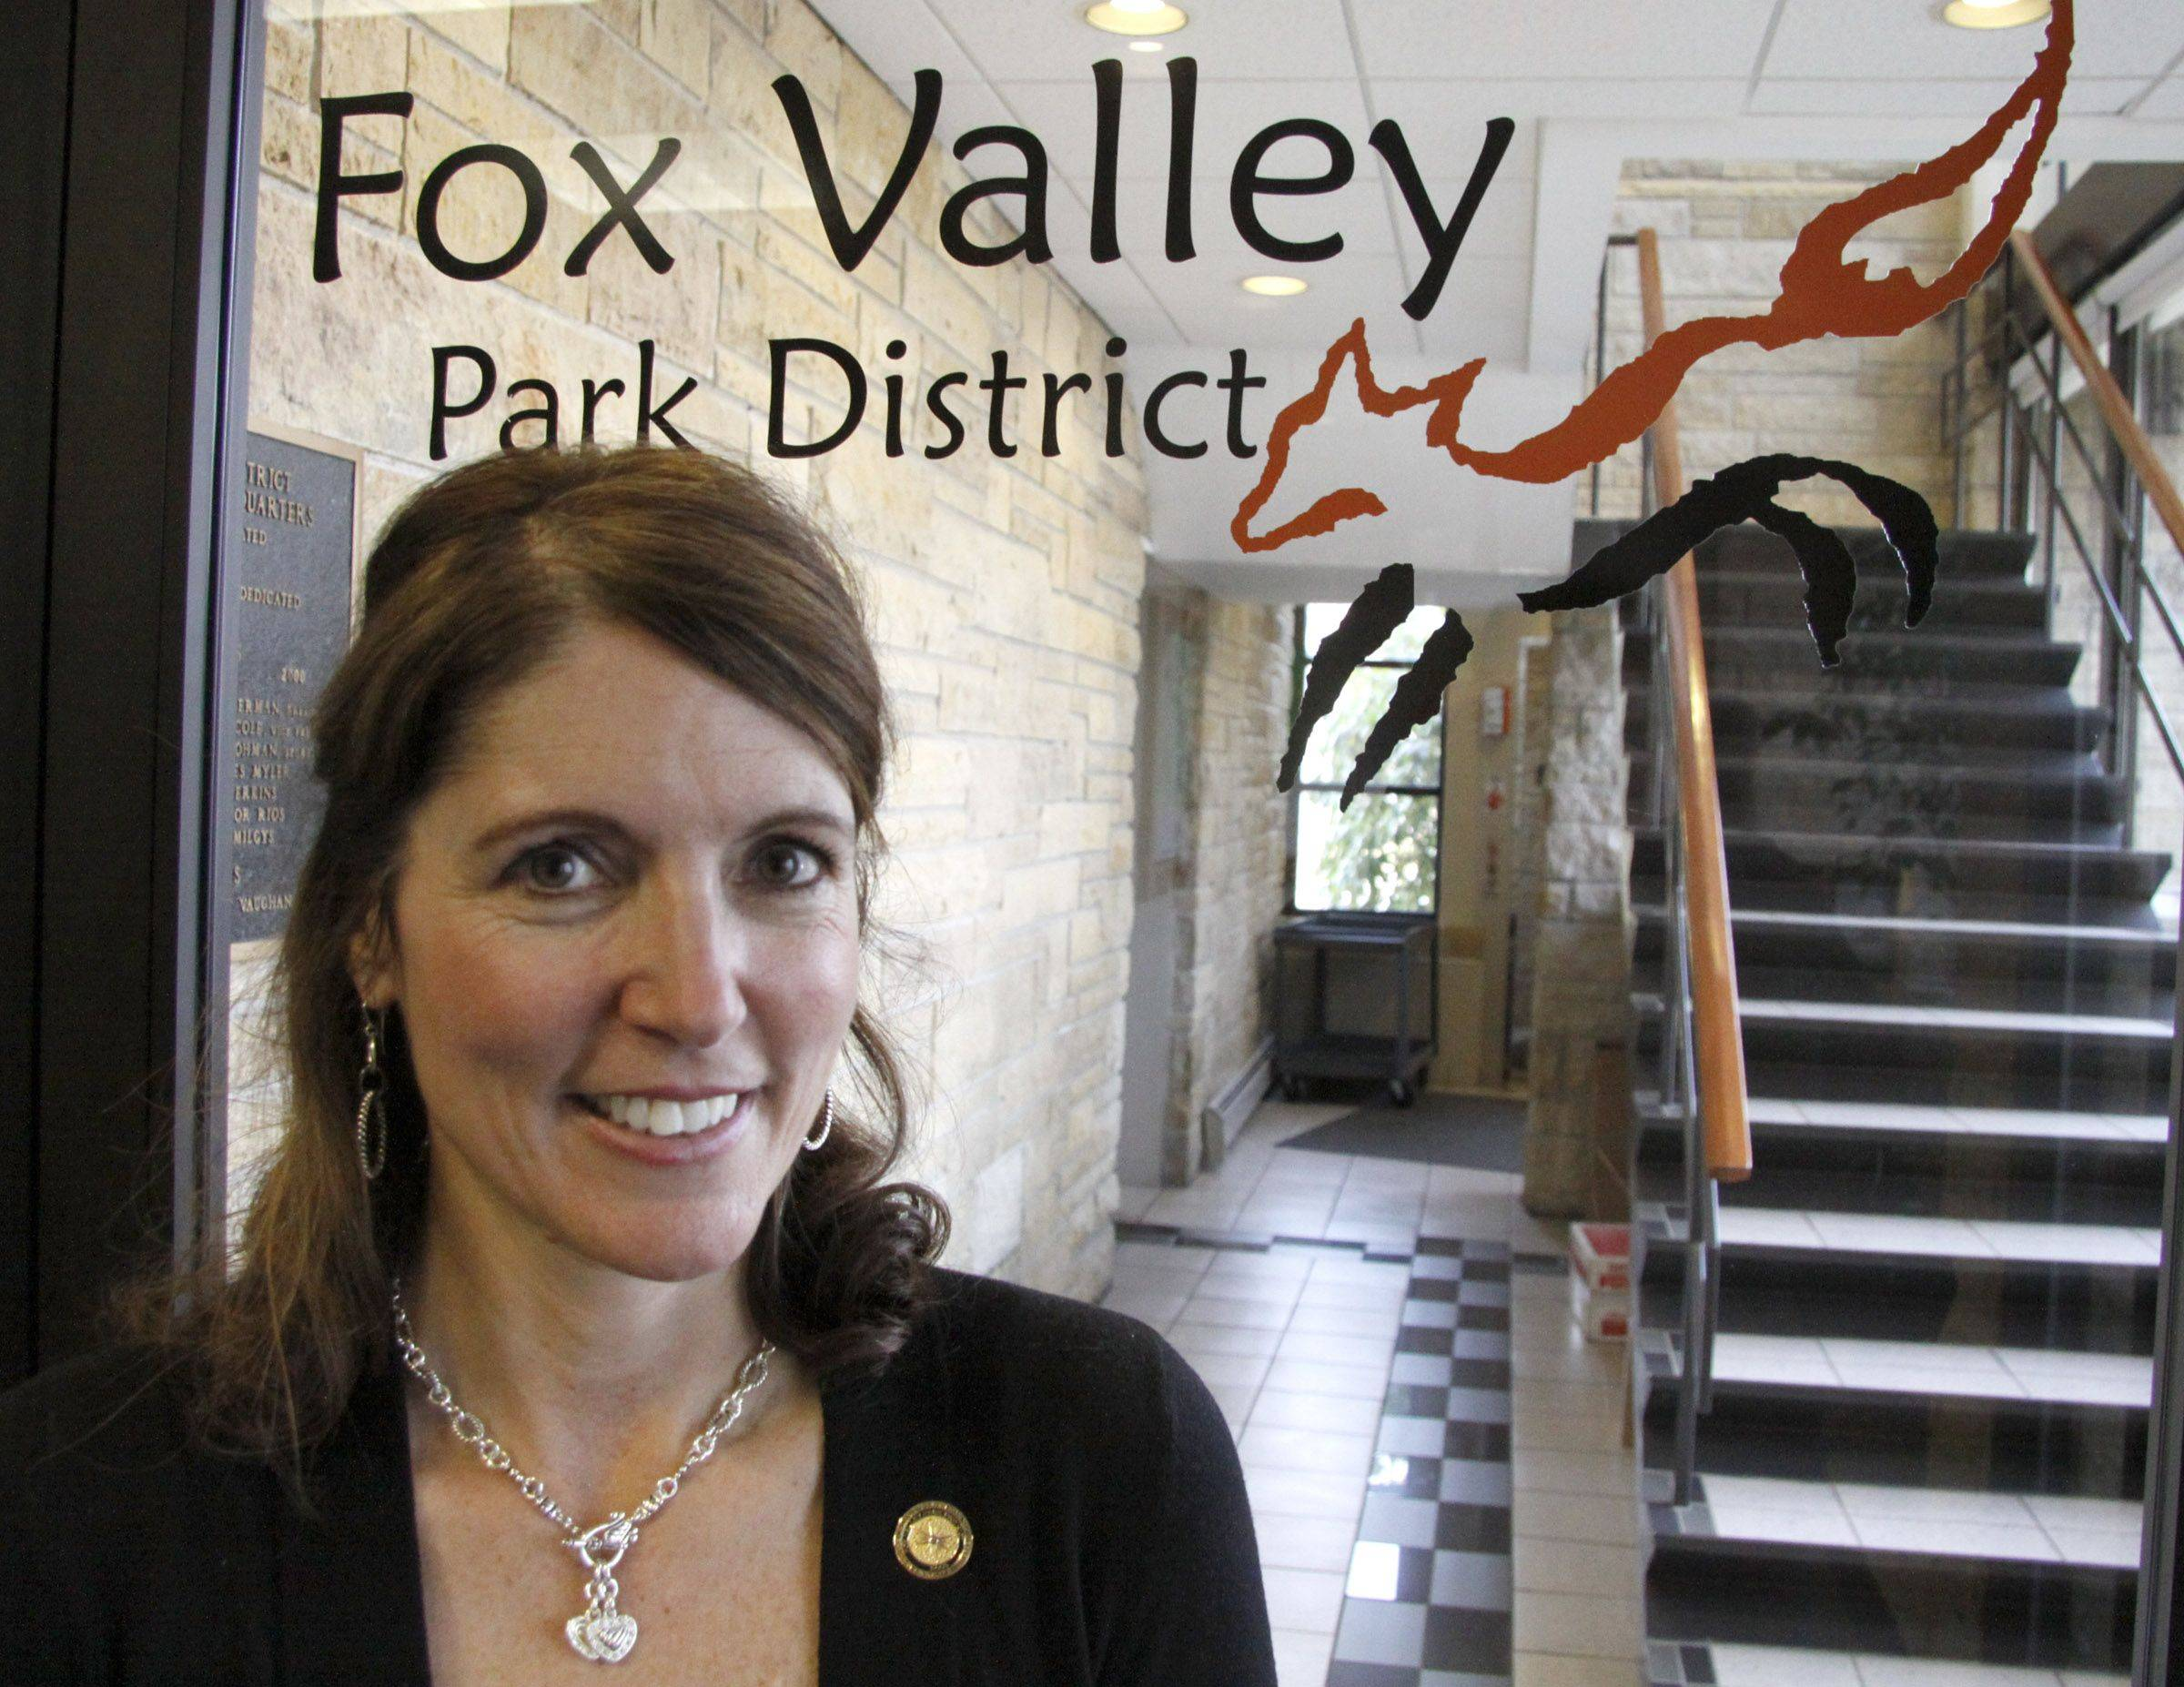 Fox Valley Park District McCaul steps up to hea...